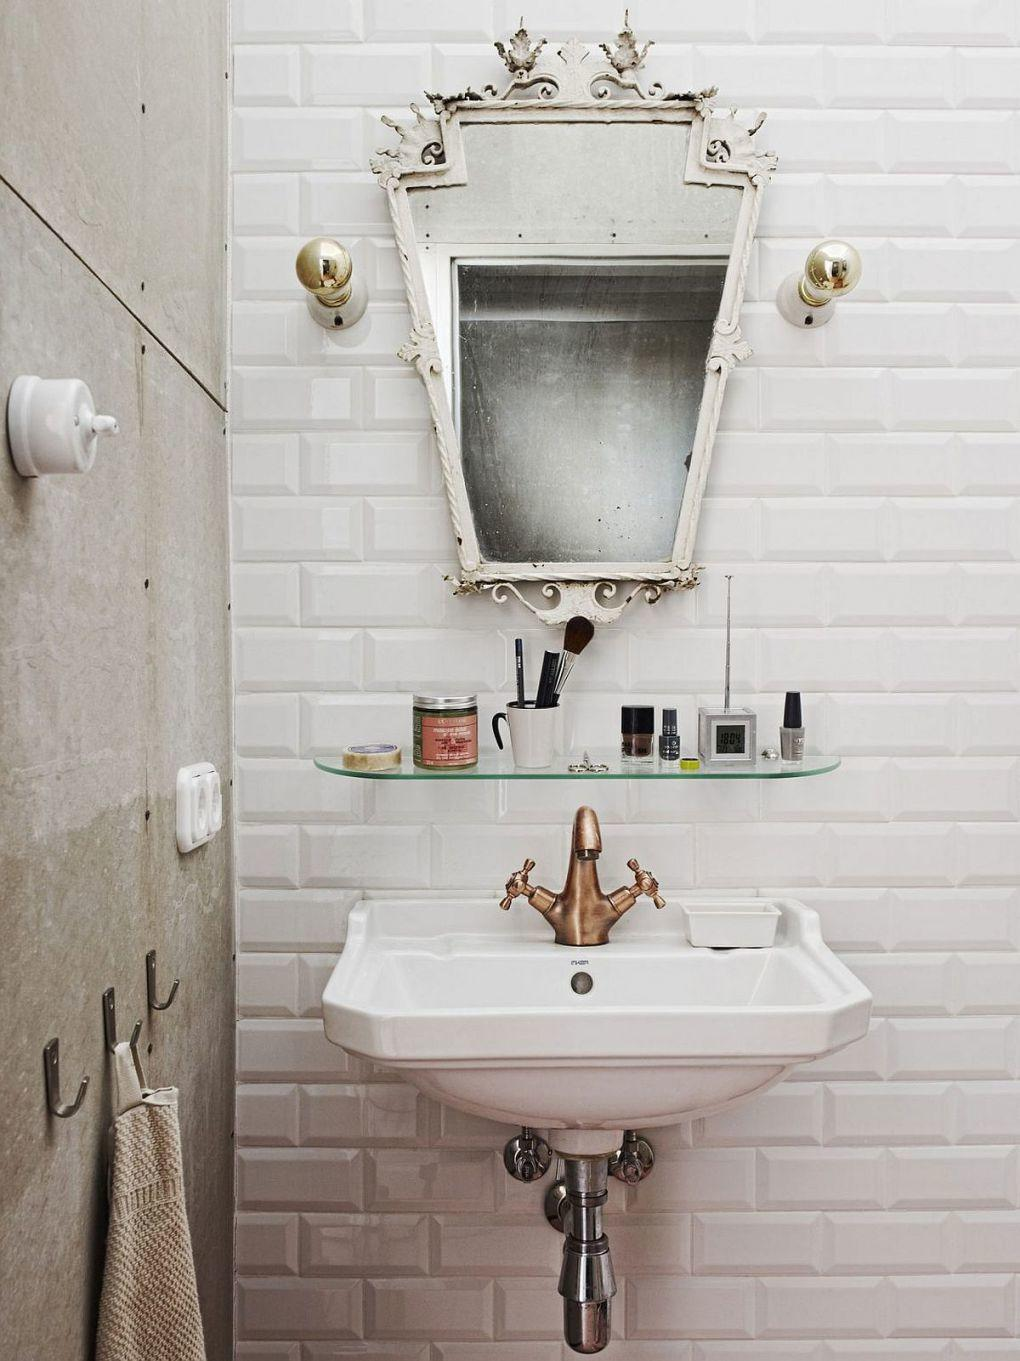 Ressam Evi | Retro industrial bathroom of the Budapest apartment with tiled backsplash 1